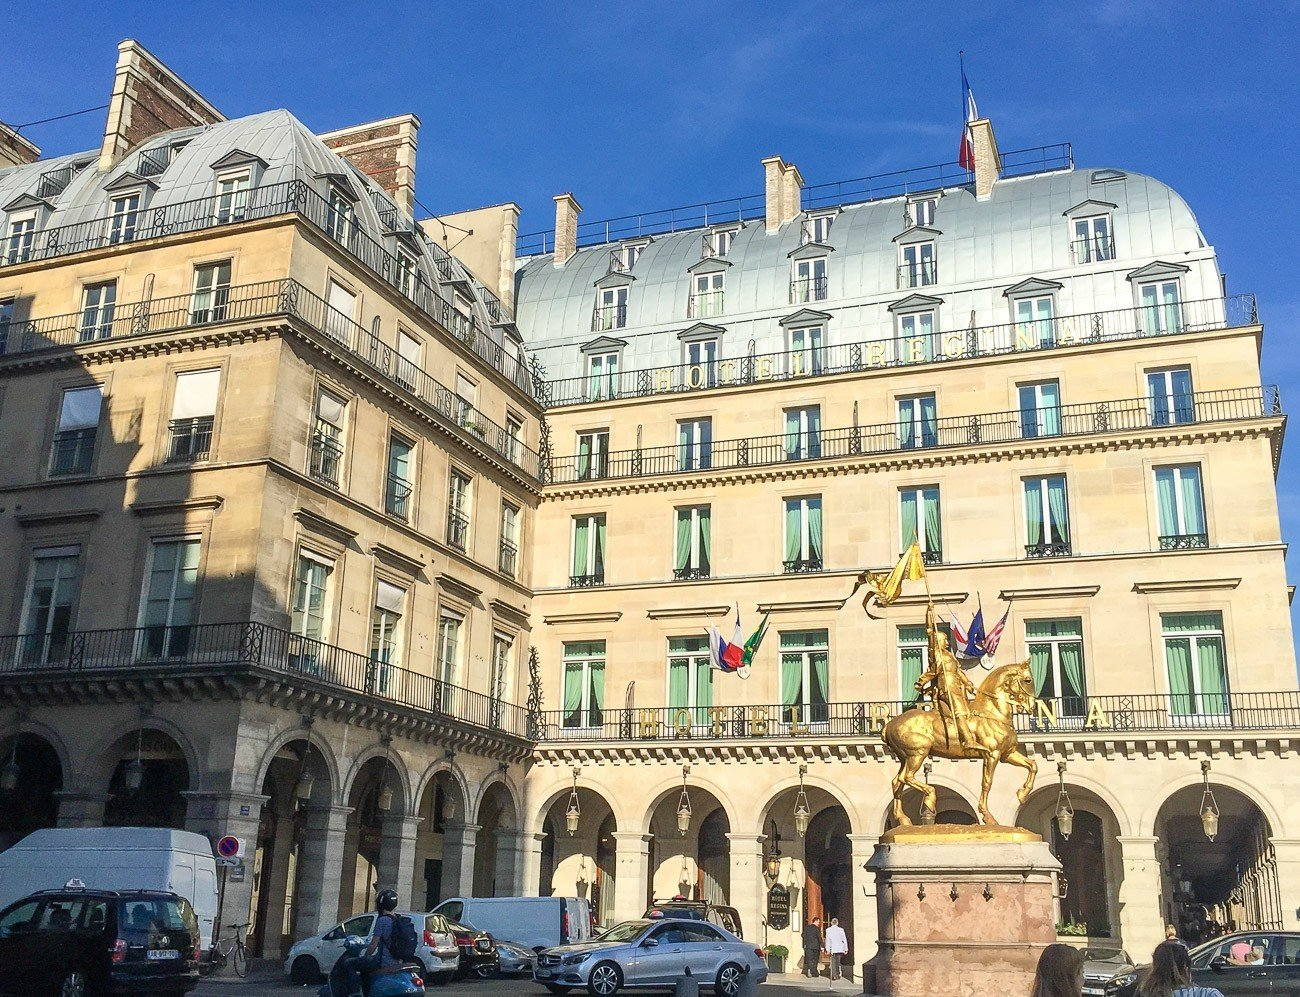 Review hotel regina in paris is excellent for families for Paris hotel address